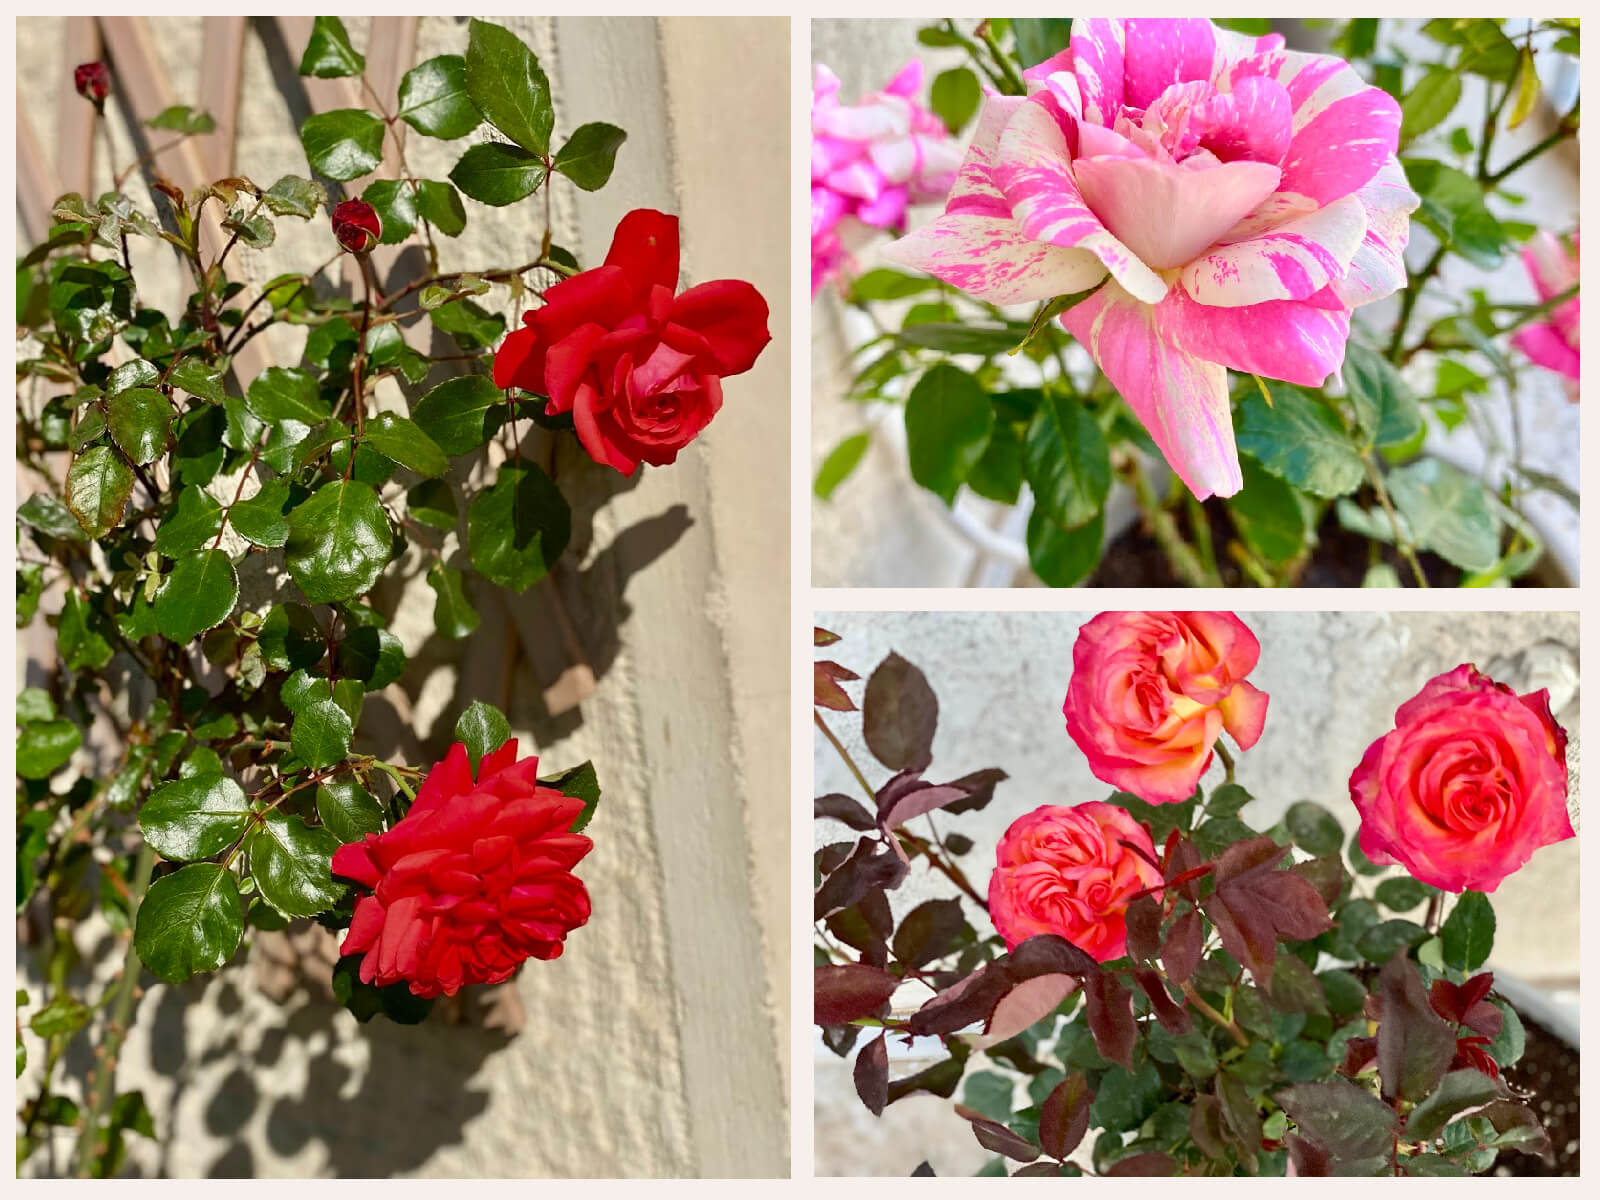 Growing roses on a balcony in Greece